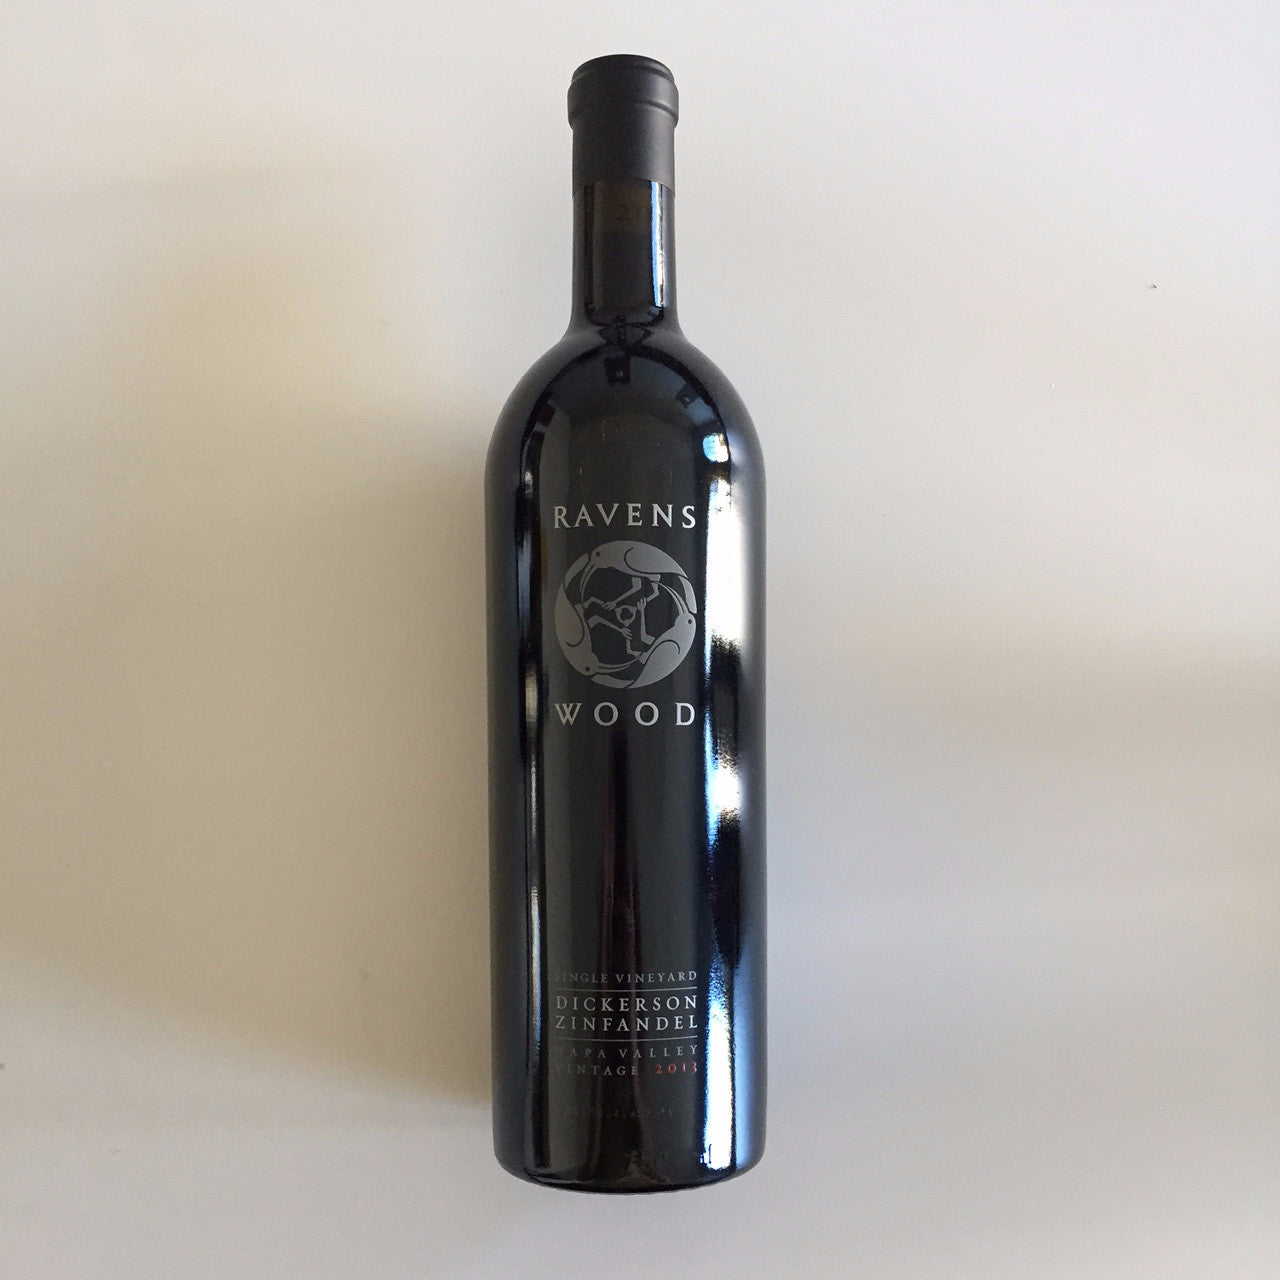 Ravenswood Zinfandel Dickerson Vineyard Napa Valley 2013